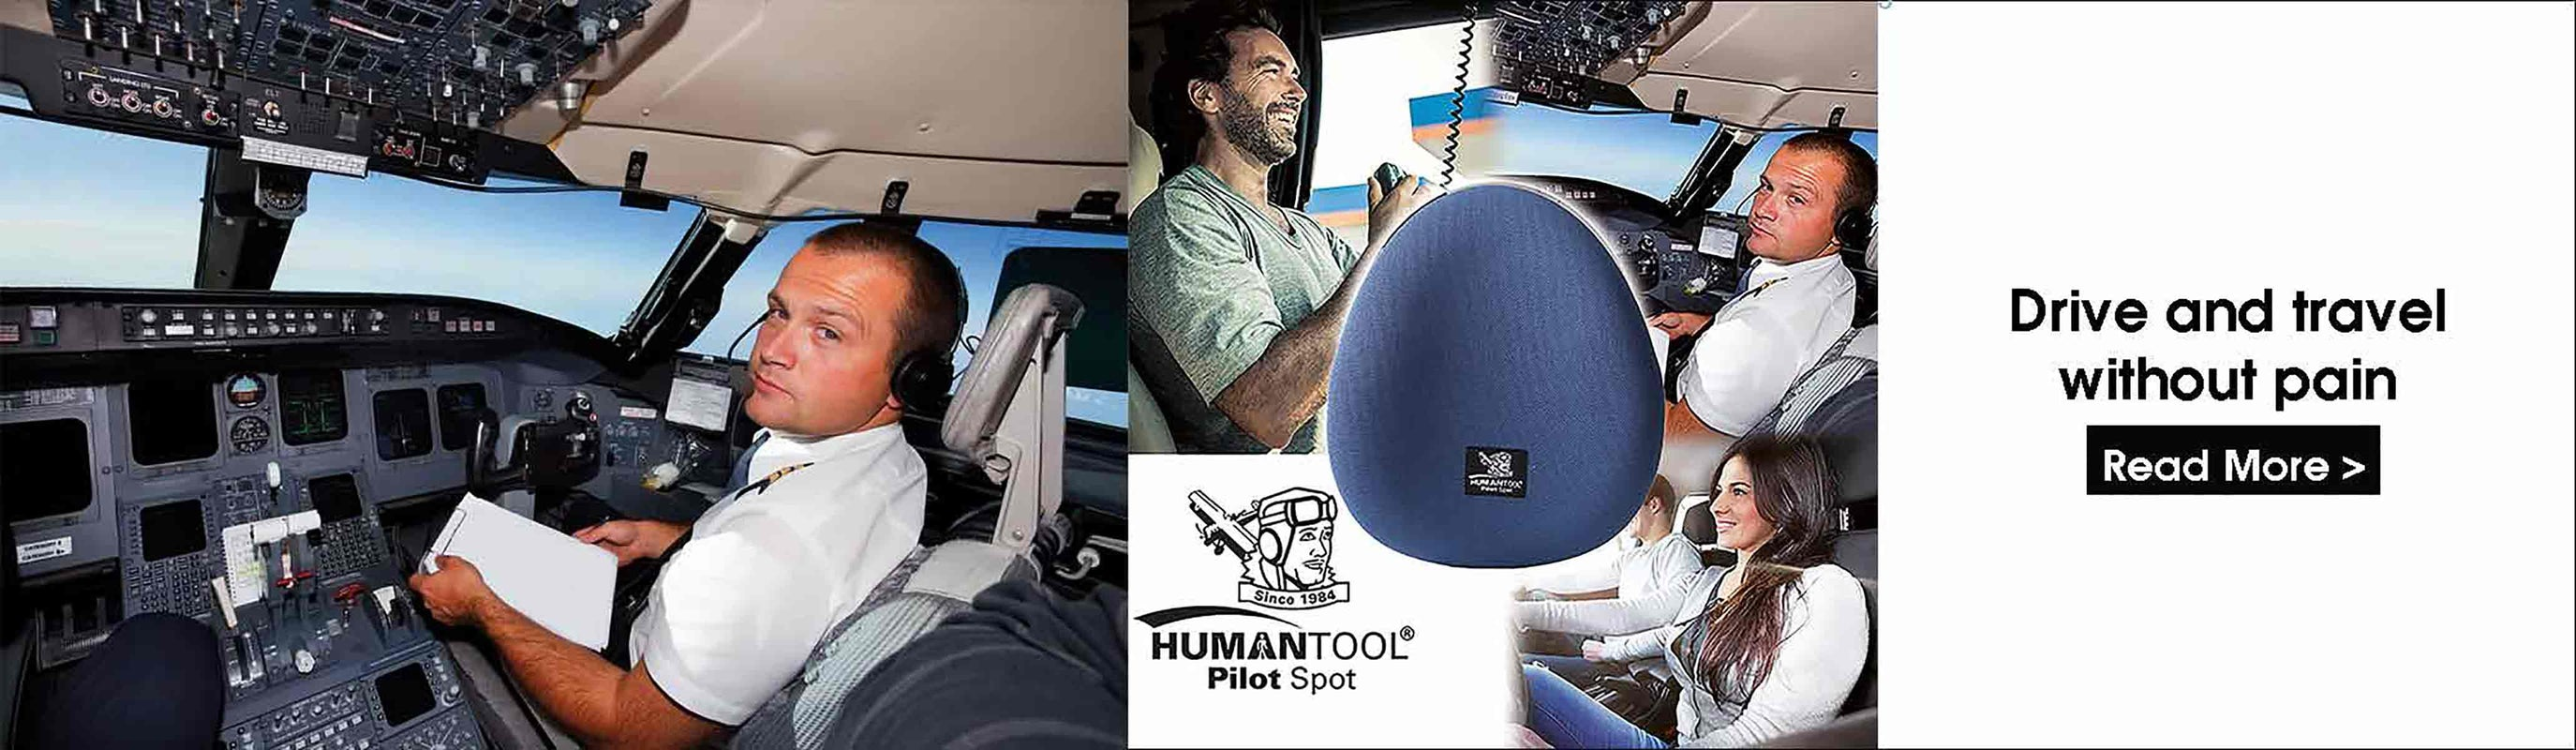 Lumbar support back rest helps to reduce back pain when you are driving a car or travelling